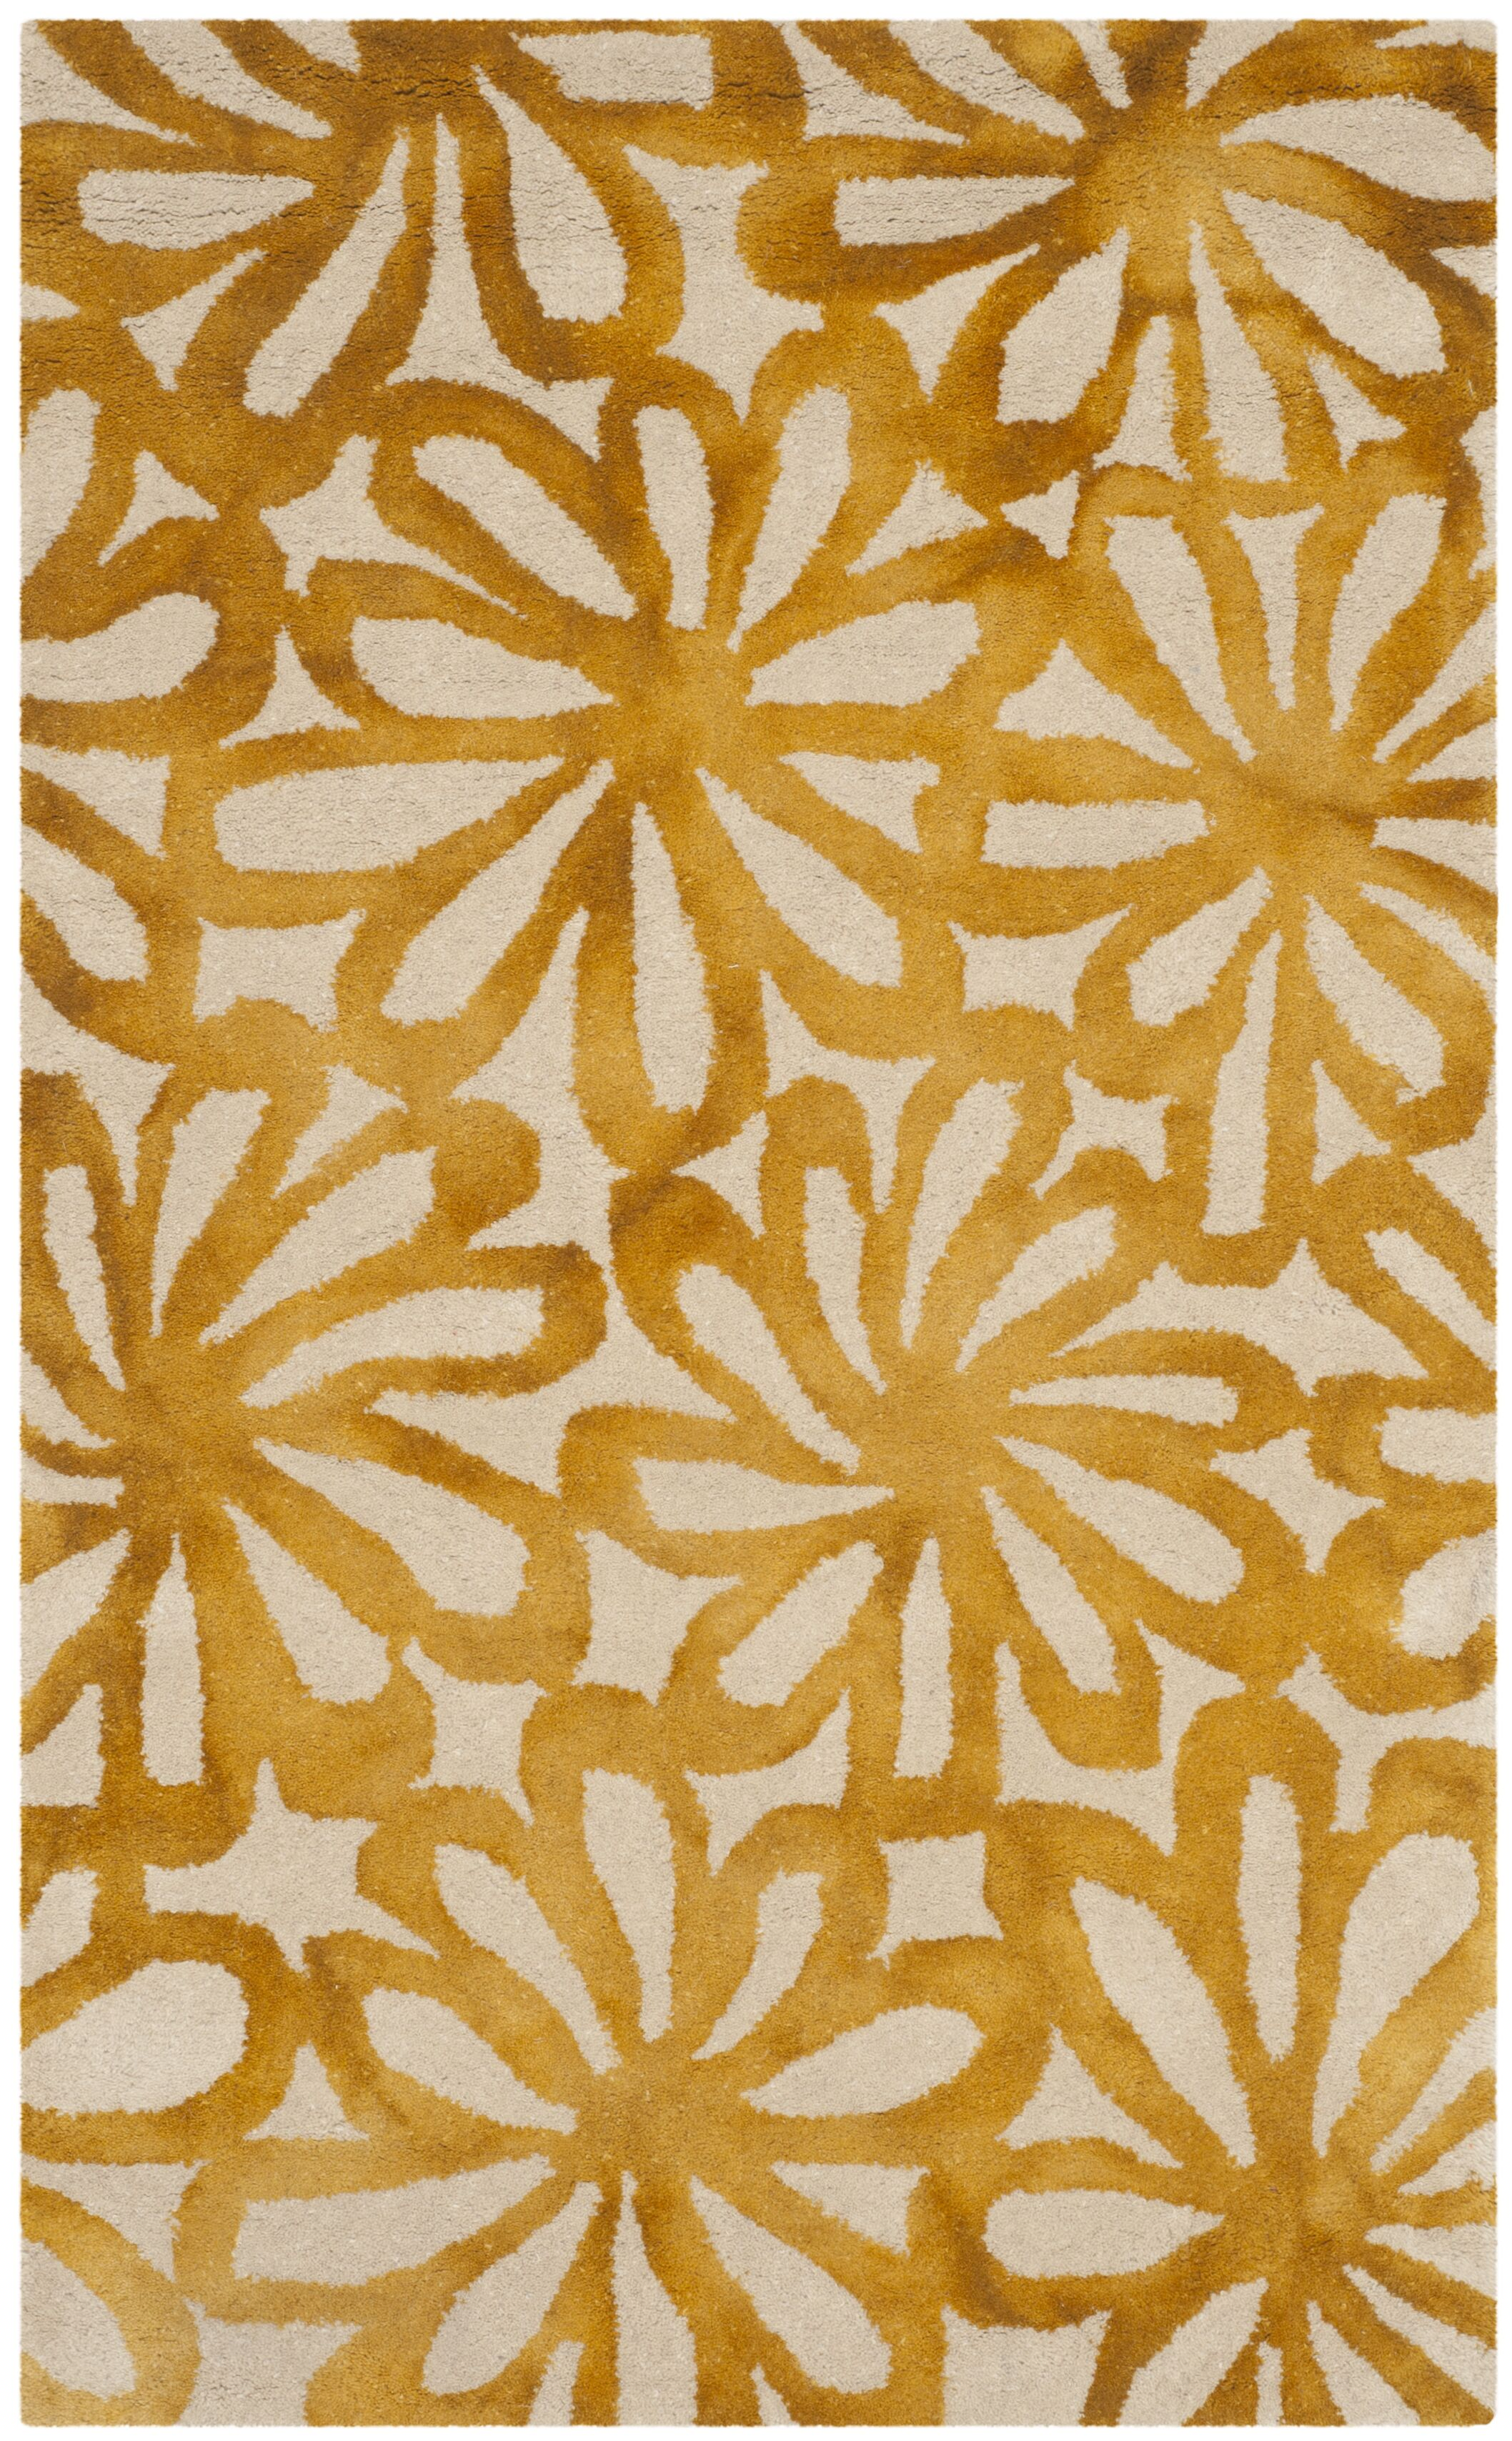 Hand-Tufted Beige & Gold Area Rug Rug Size: Rectangle 3' x 5'